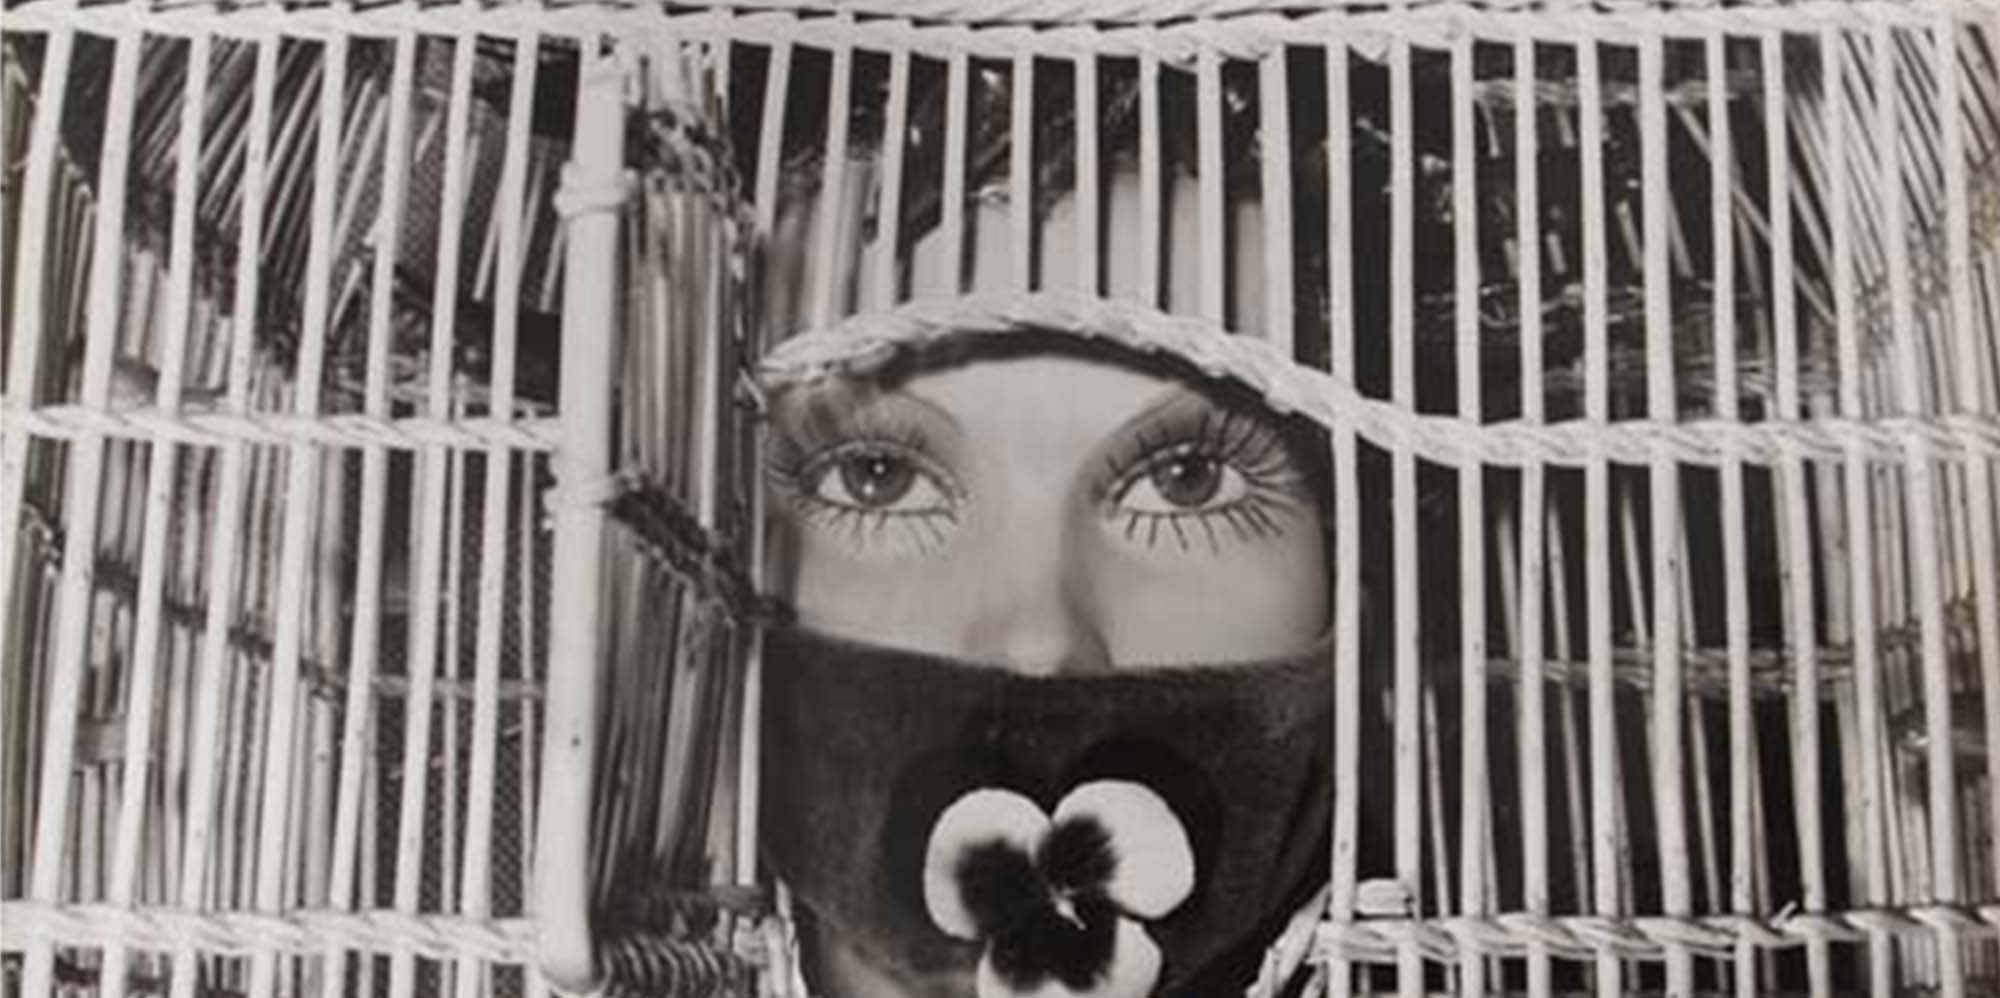 A photograph of what appears to be a mannequin's head and shoulders. A cage has been placed over the head, with the opening over the face. The mouth of the figure is covered by what appears to be fabric and a single flower.